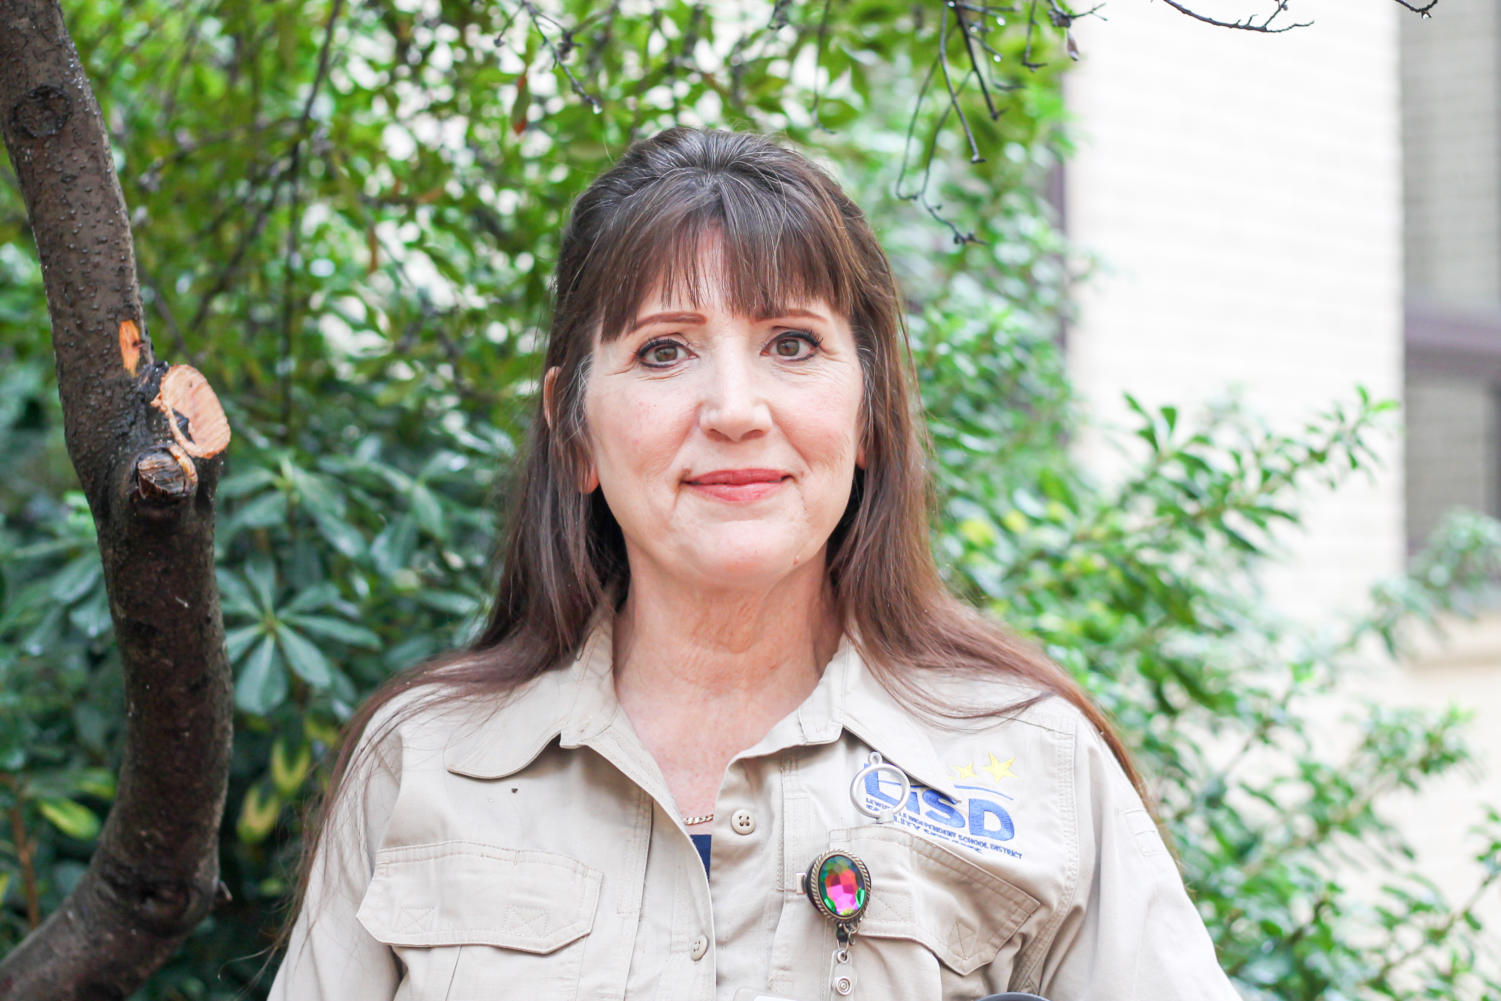 LISD Locksmith Debnes Magnes credits her faith for helping her discover her passion for butterfly gardening. She wants to share it with others and always has kind words for everyone.